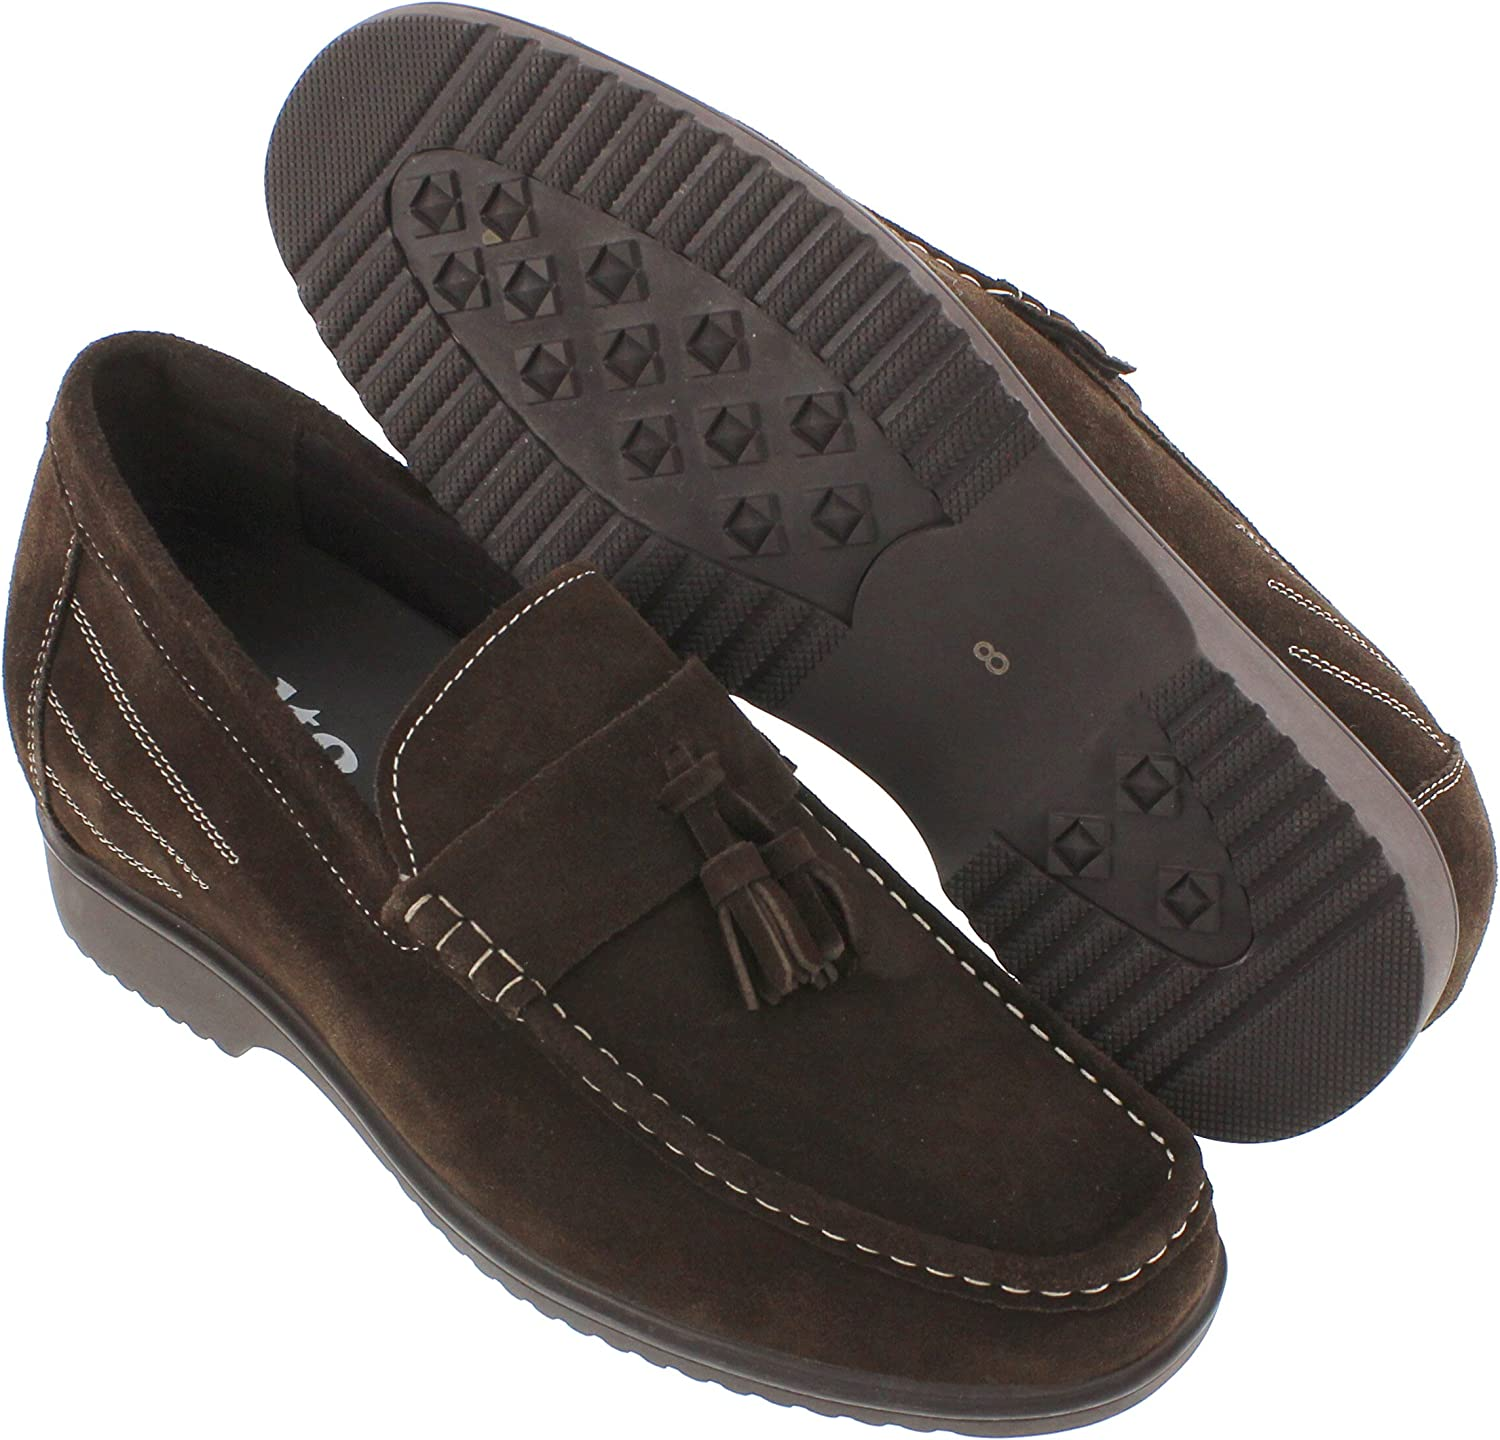 Dark Brown Suede Leather Slip-on Formal Tasel Loafers 3.3 Inches Taller G61211 CALTO Mens Invisible Height Increasing Elevator Dress Shoes